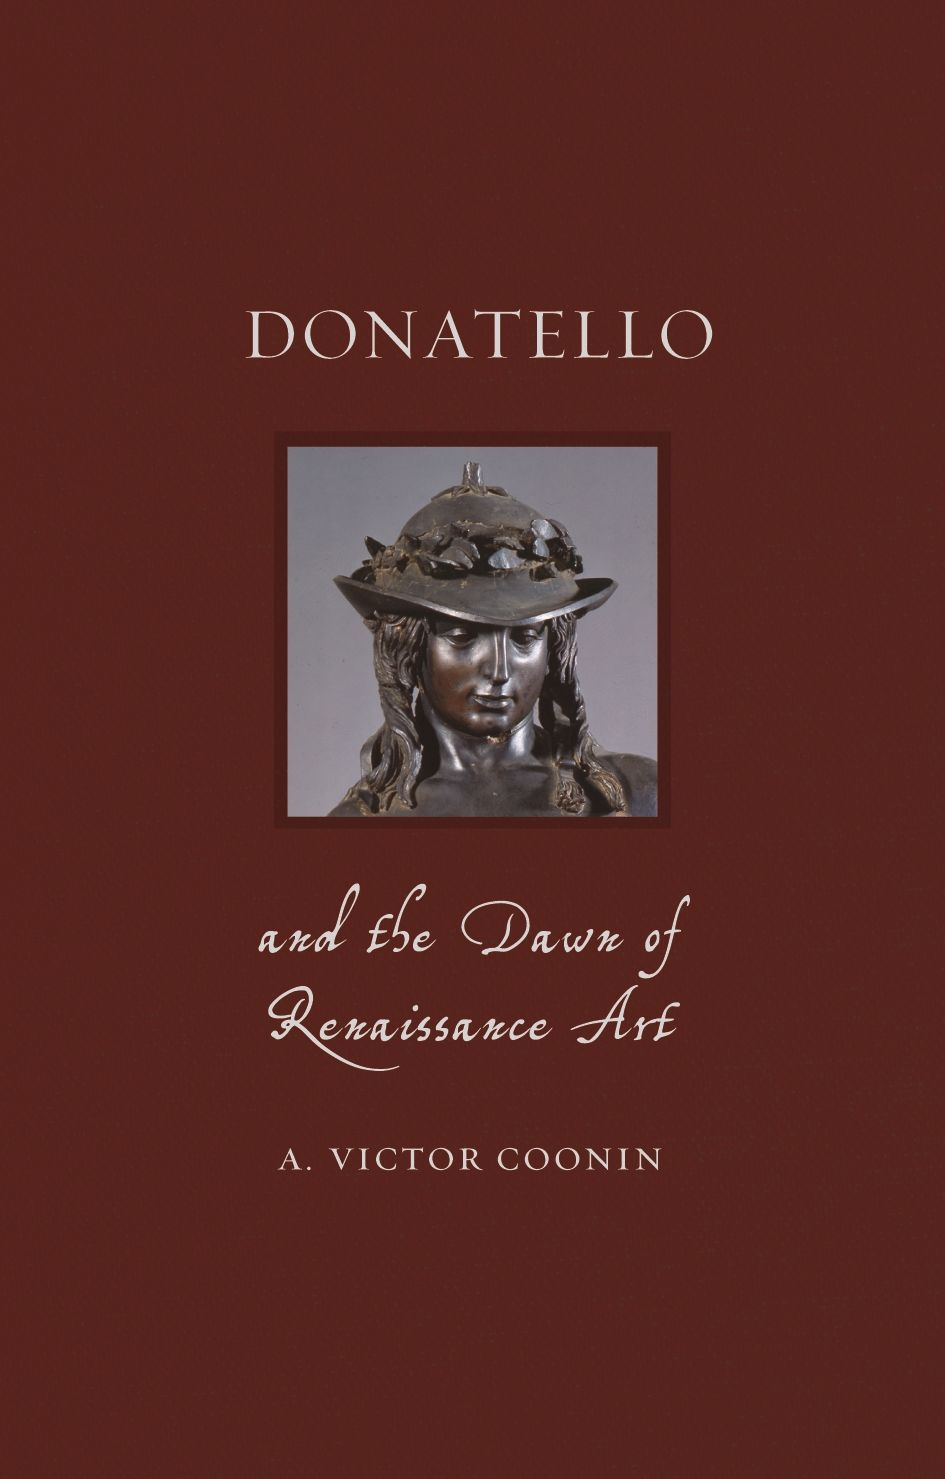 Donatello and the Dawn of Renaissance Art